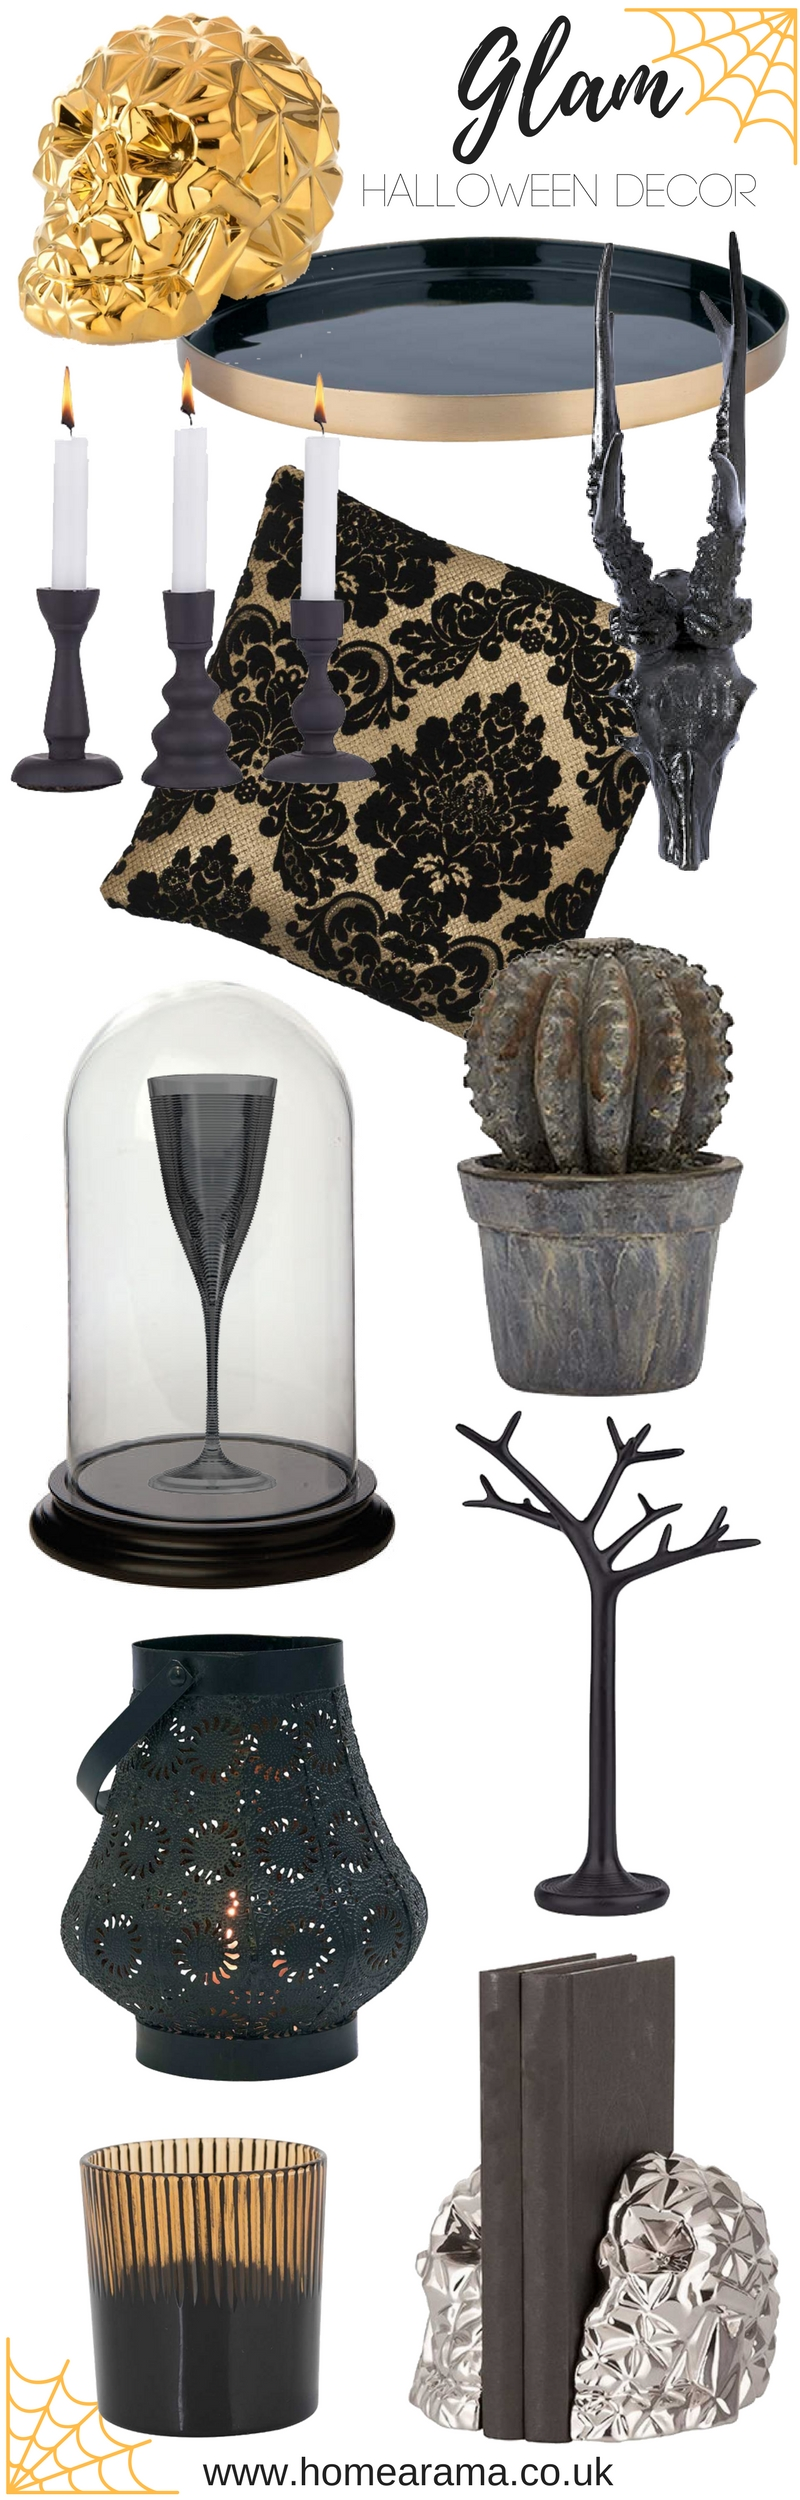 Glam Halloween Decor Inspiration